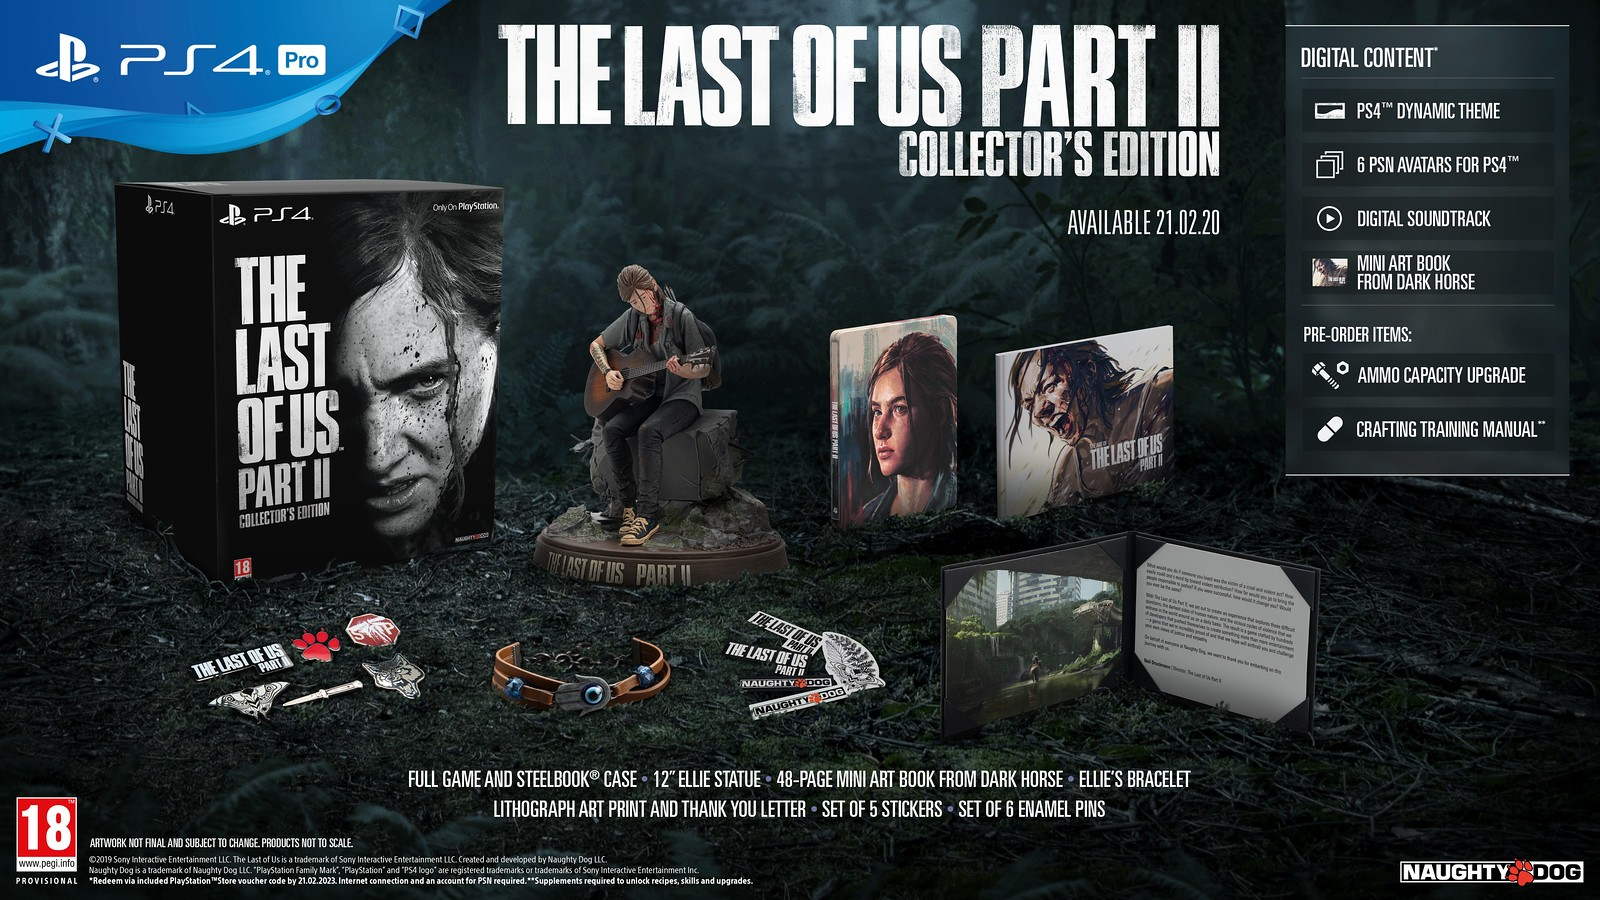 Ps4 Games Release Dates 2020.The Last Of Us Part 2 Coming To Ps4 On February 21 2020